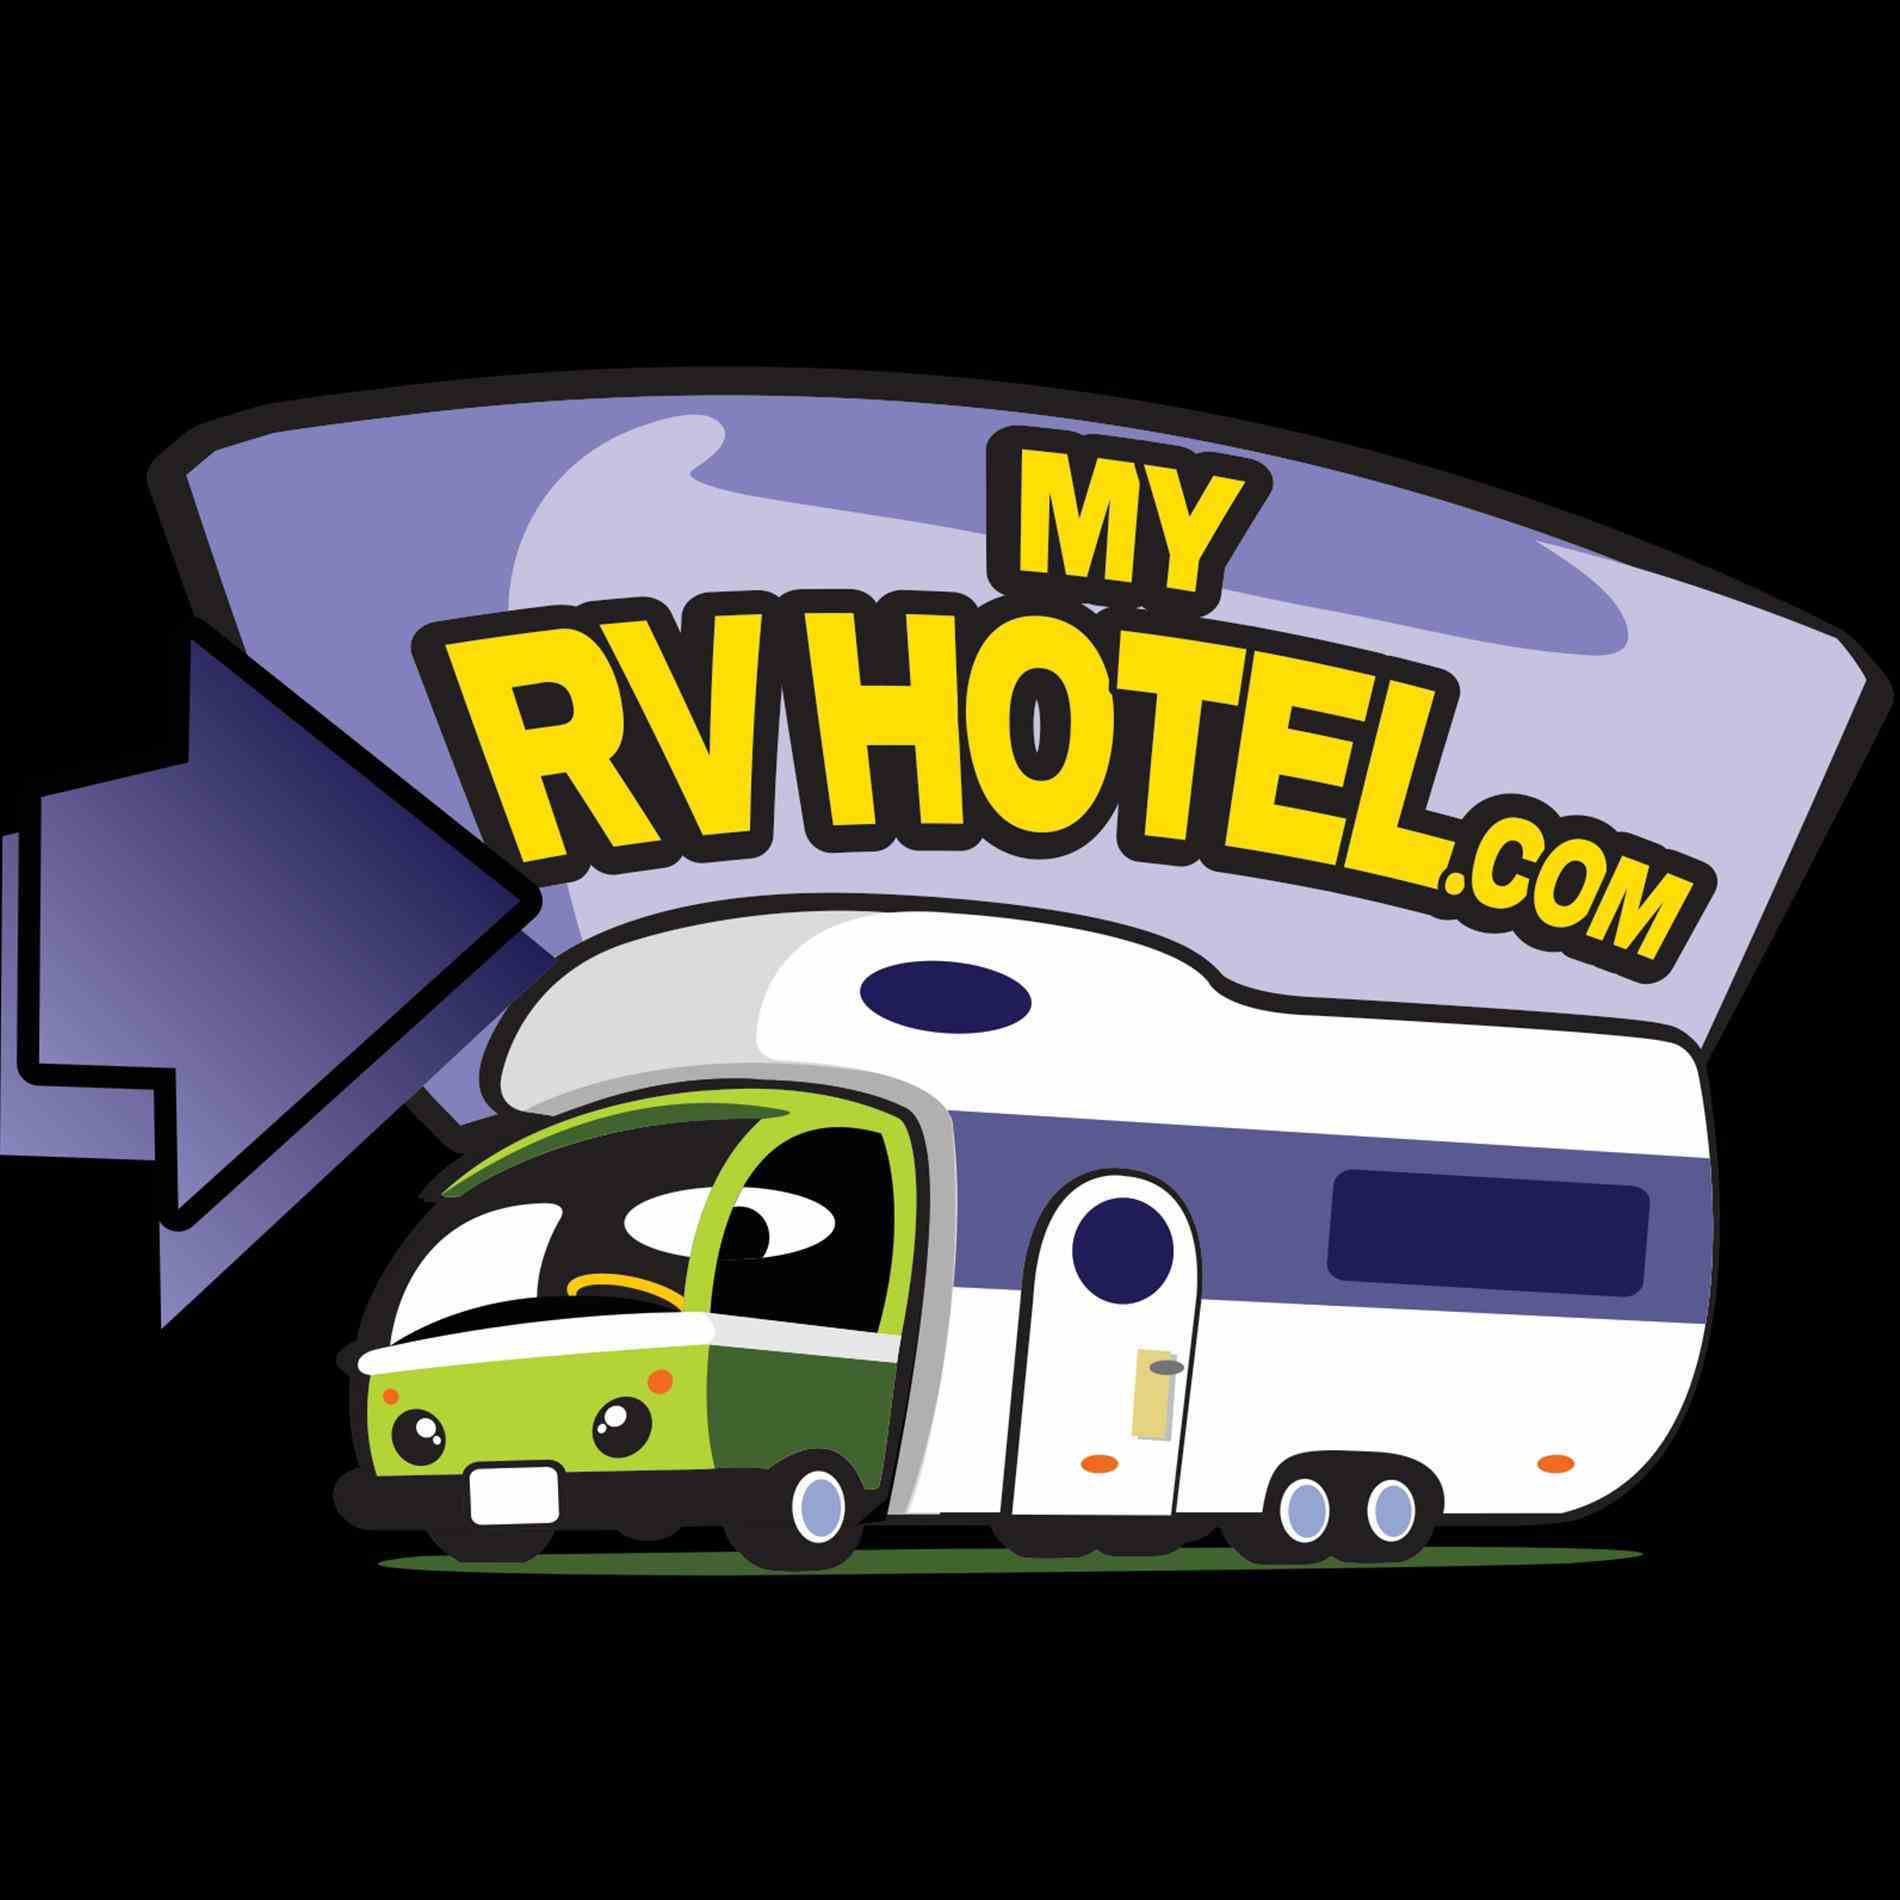 Rv clipart vacation rv. Chemineewebsite free for labor